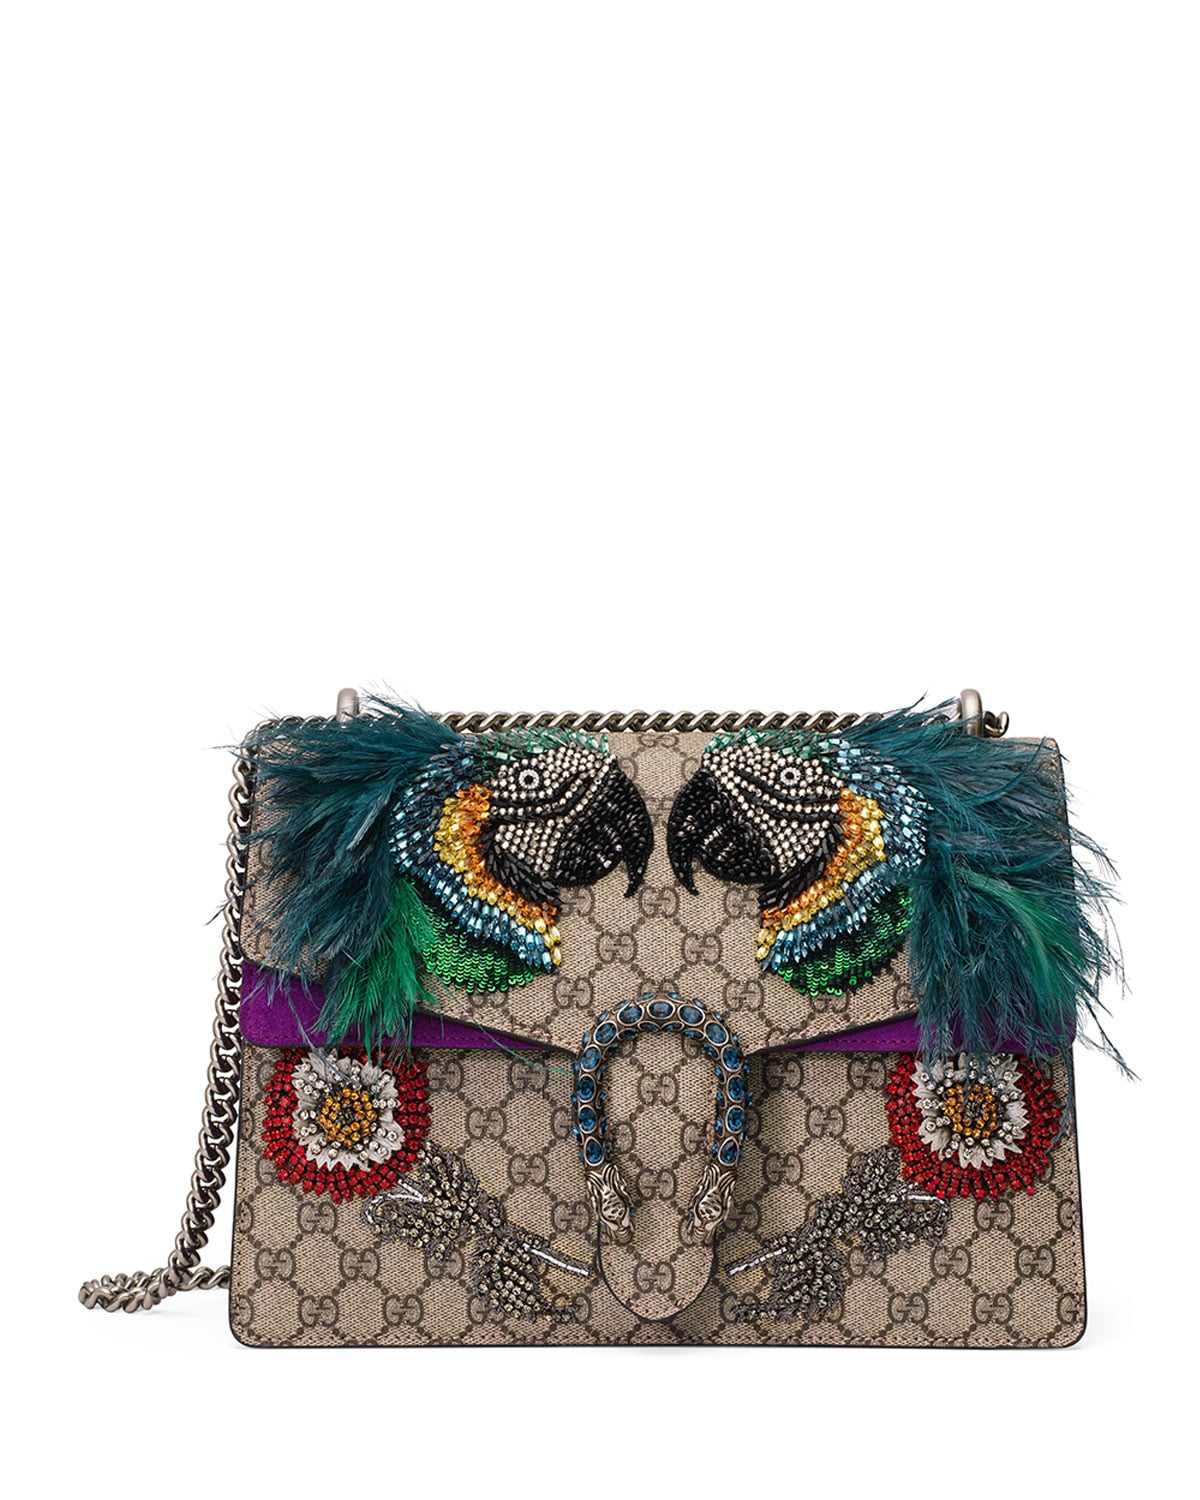 Gucci Spring Summer 2017 Bag Collection Spotted Fashion